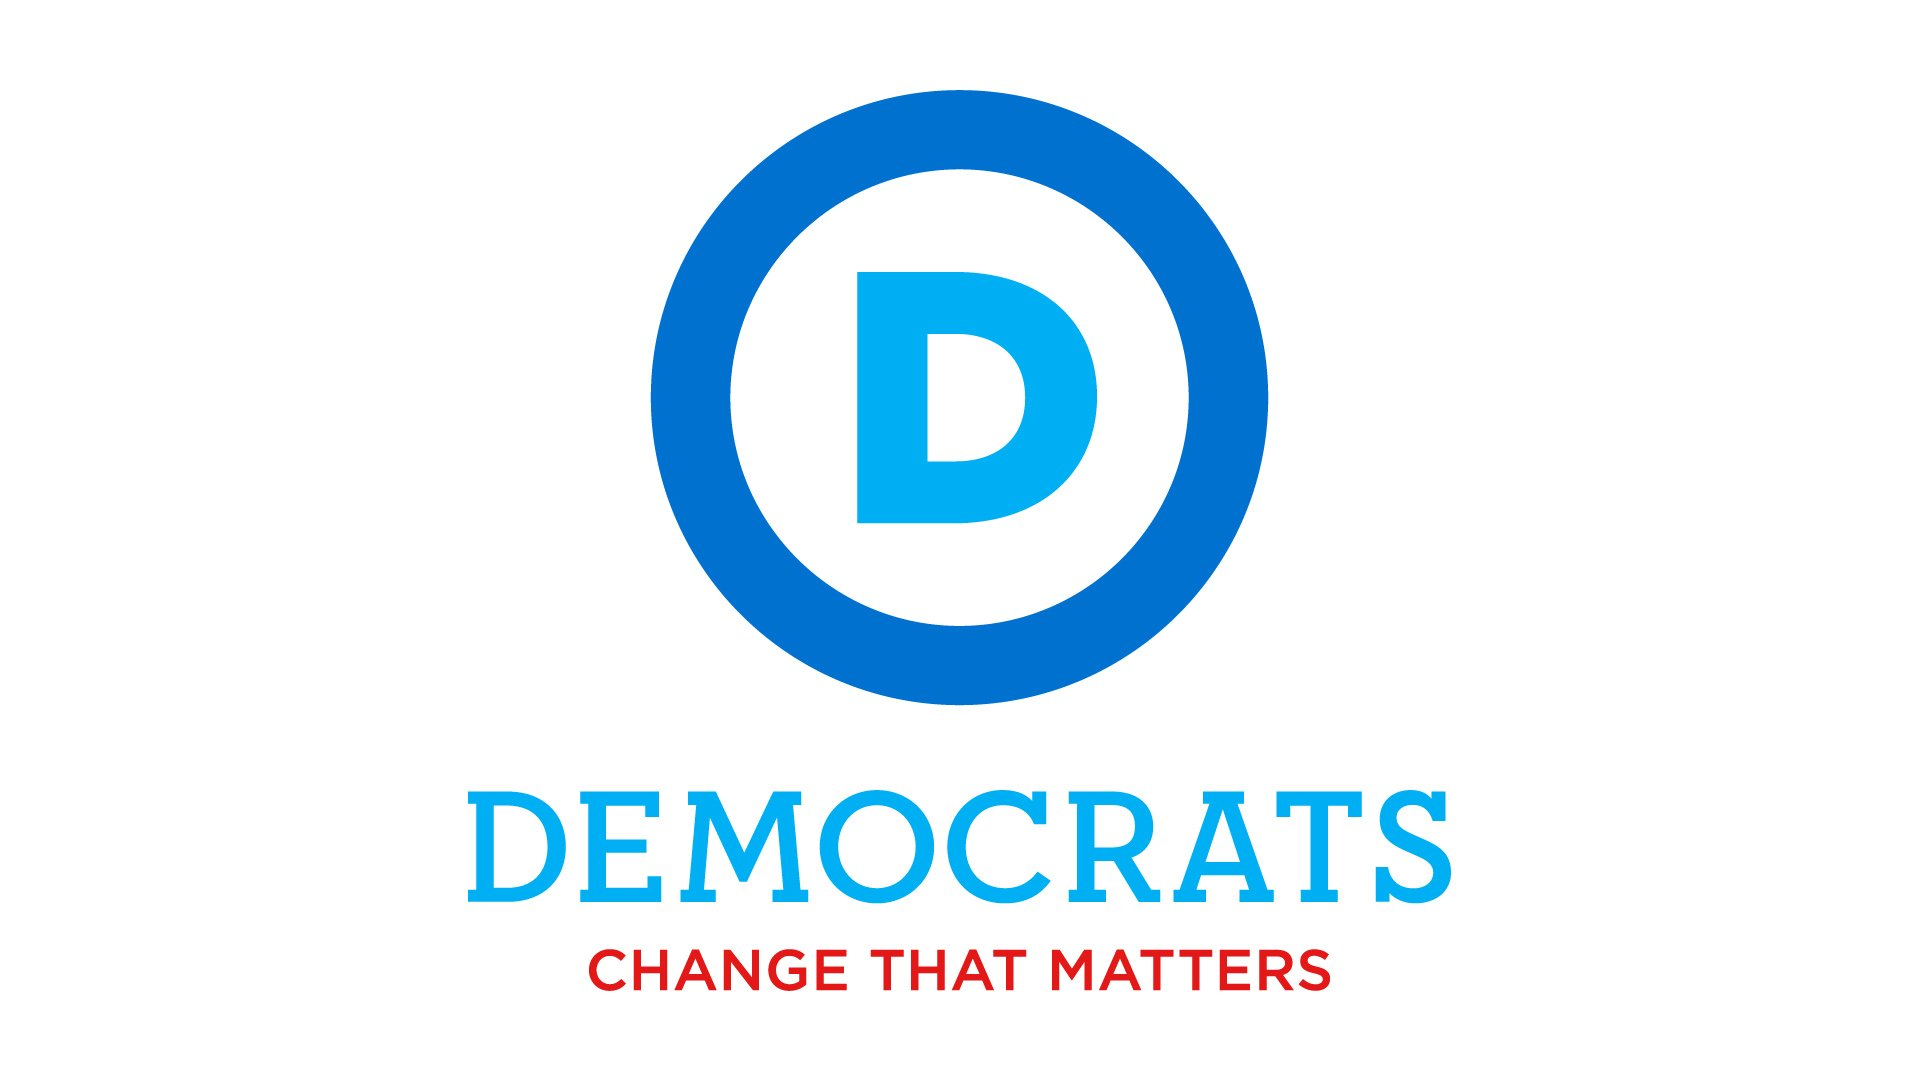 democratic party logo desktop wallpaper 63151